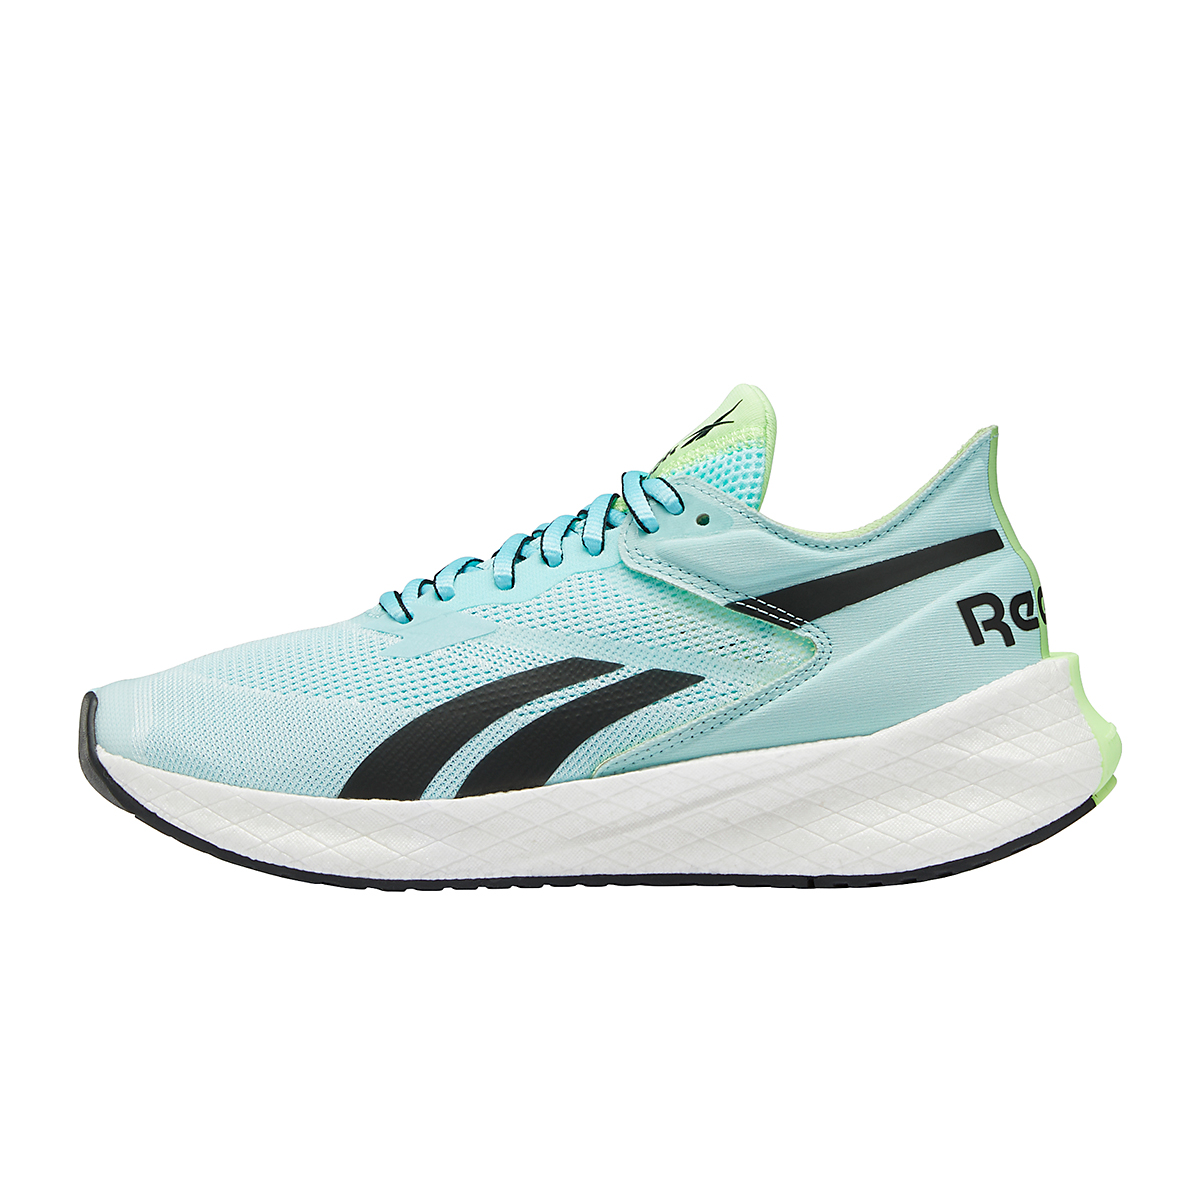 Women's Reebok Floatride Energy Symmetros Running Shoe - Color: Digital Glow/Chalk Blue/Neon Mint - Size: 6 - Width: Regular, Digital Glow/Chalk Blue/Neon Mint, large, image 2